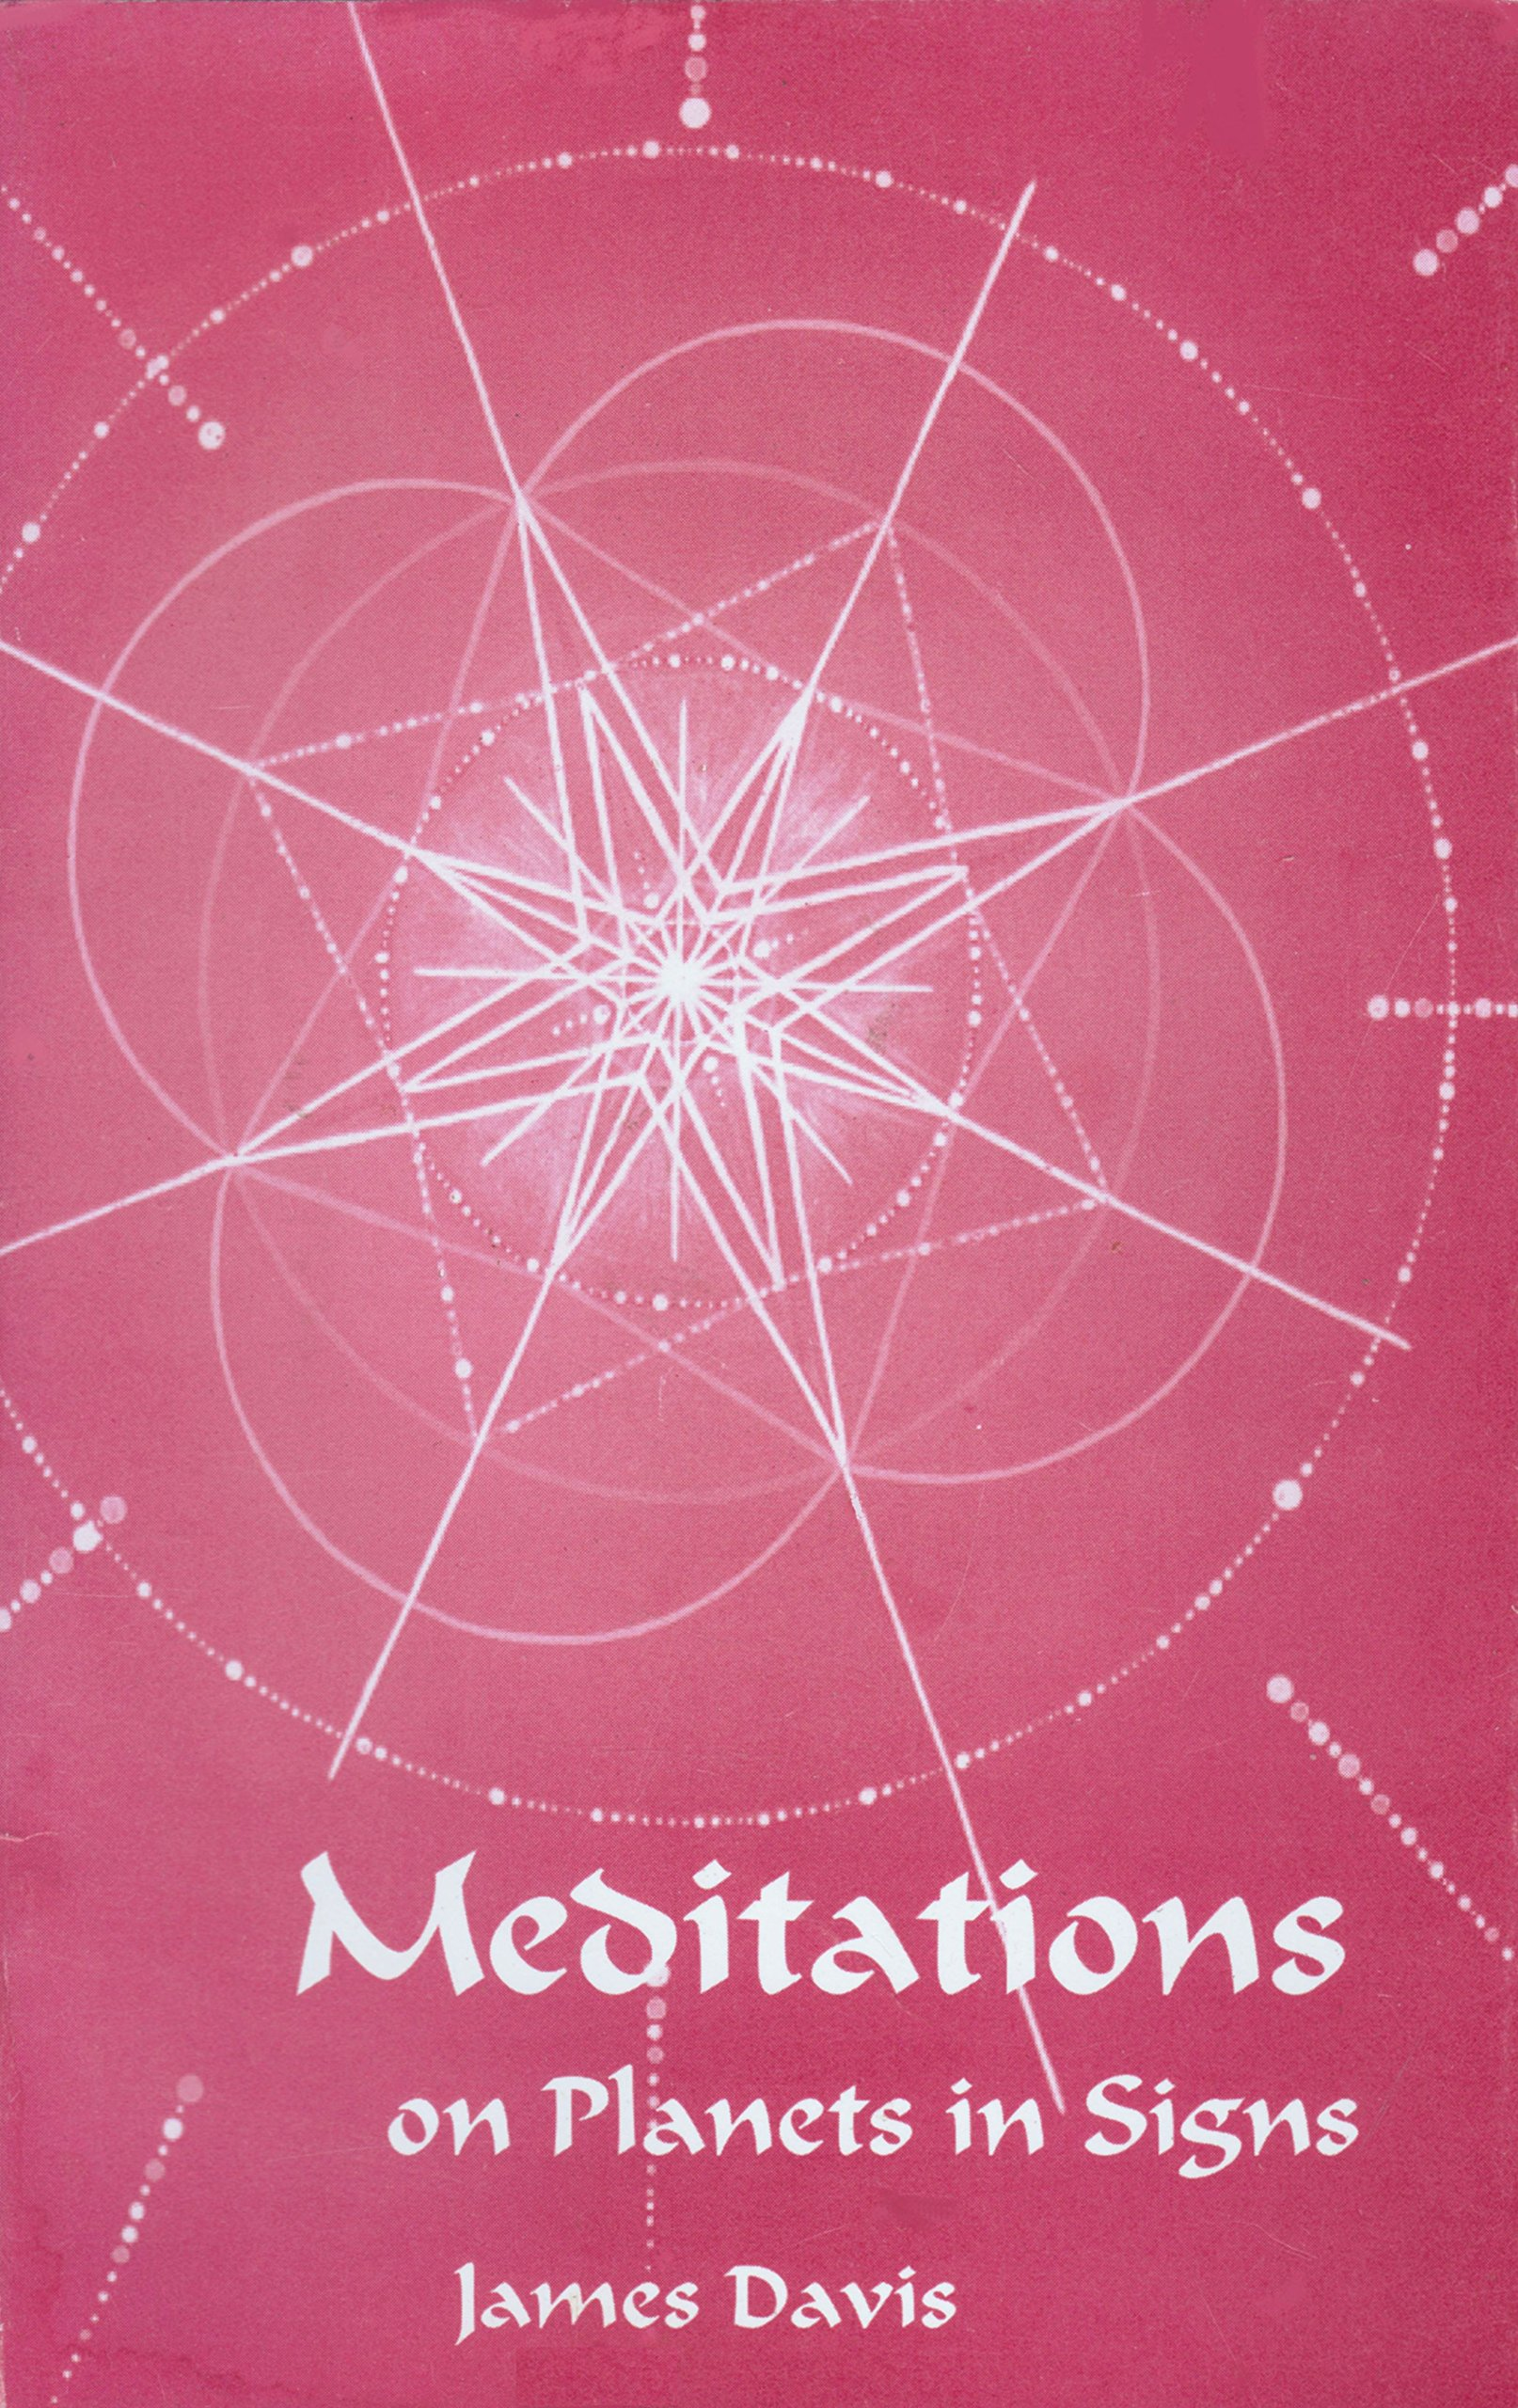 Meditations on Planets in Signs: James Davis: Amazon com: Books